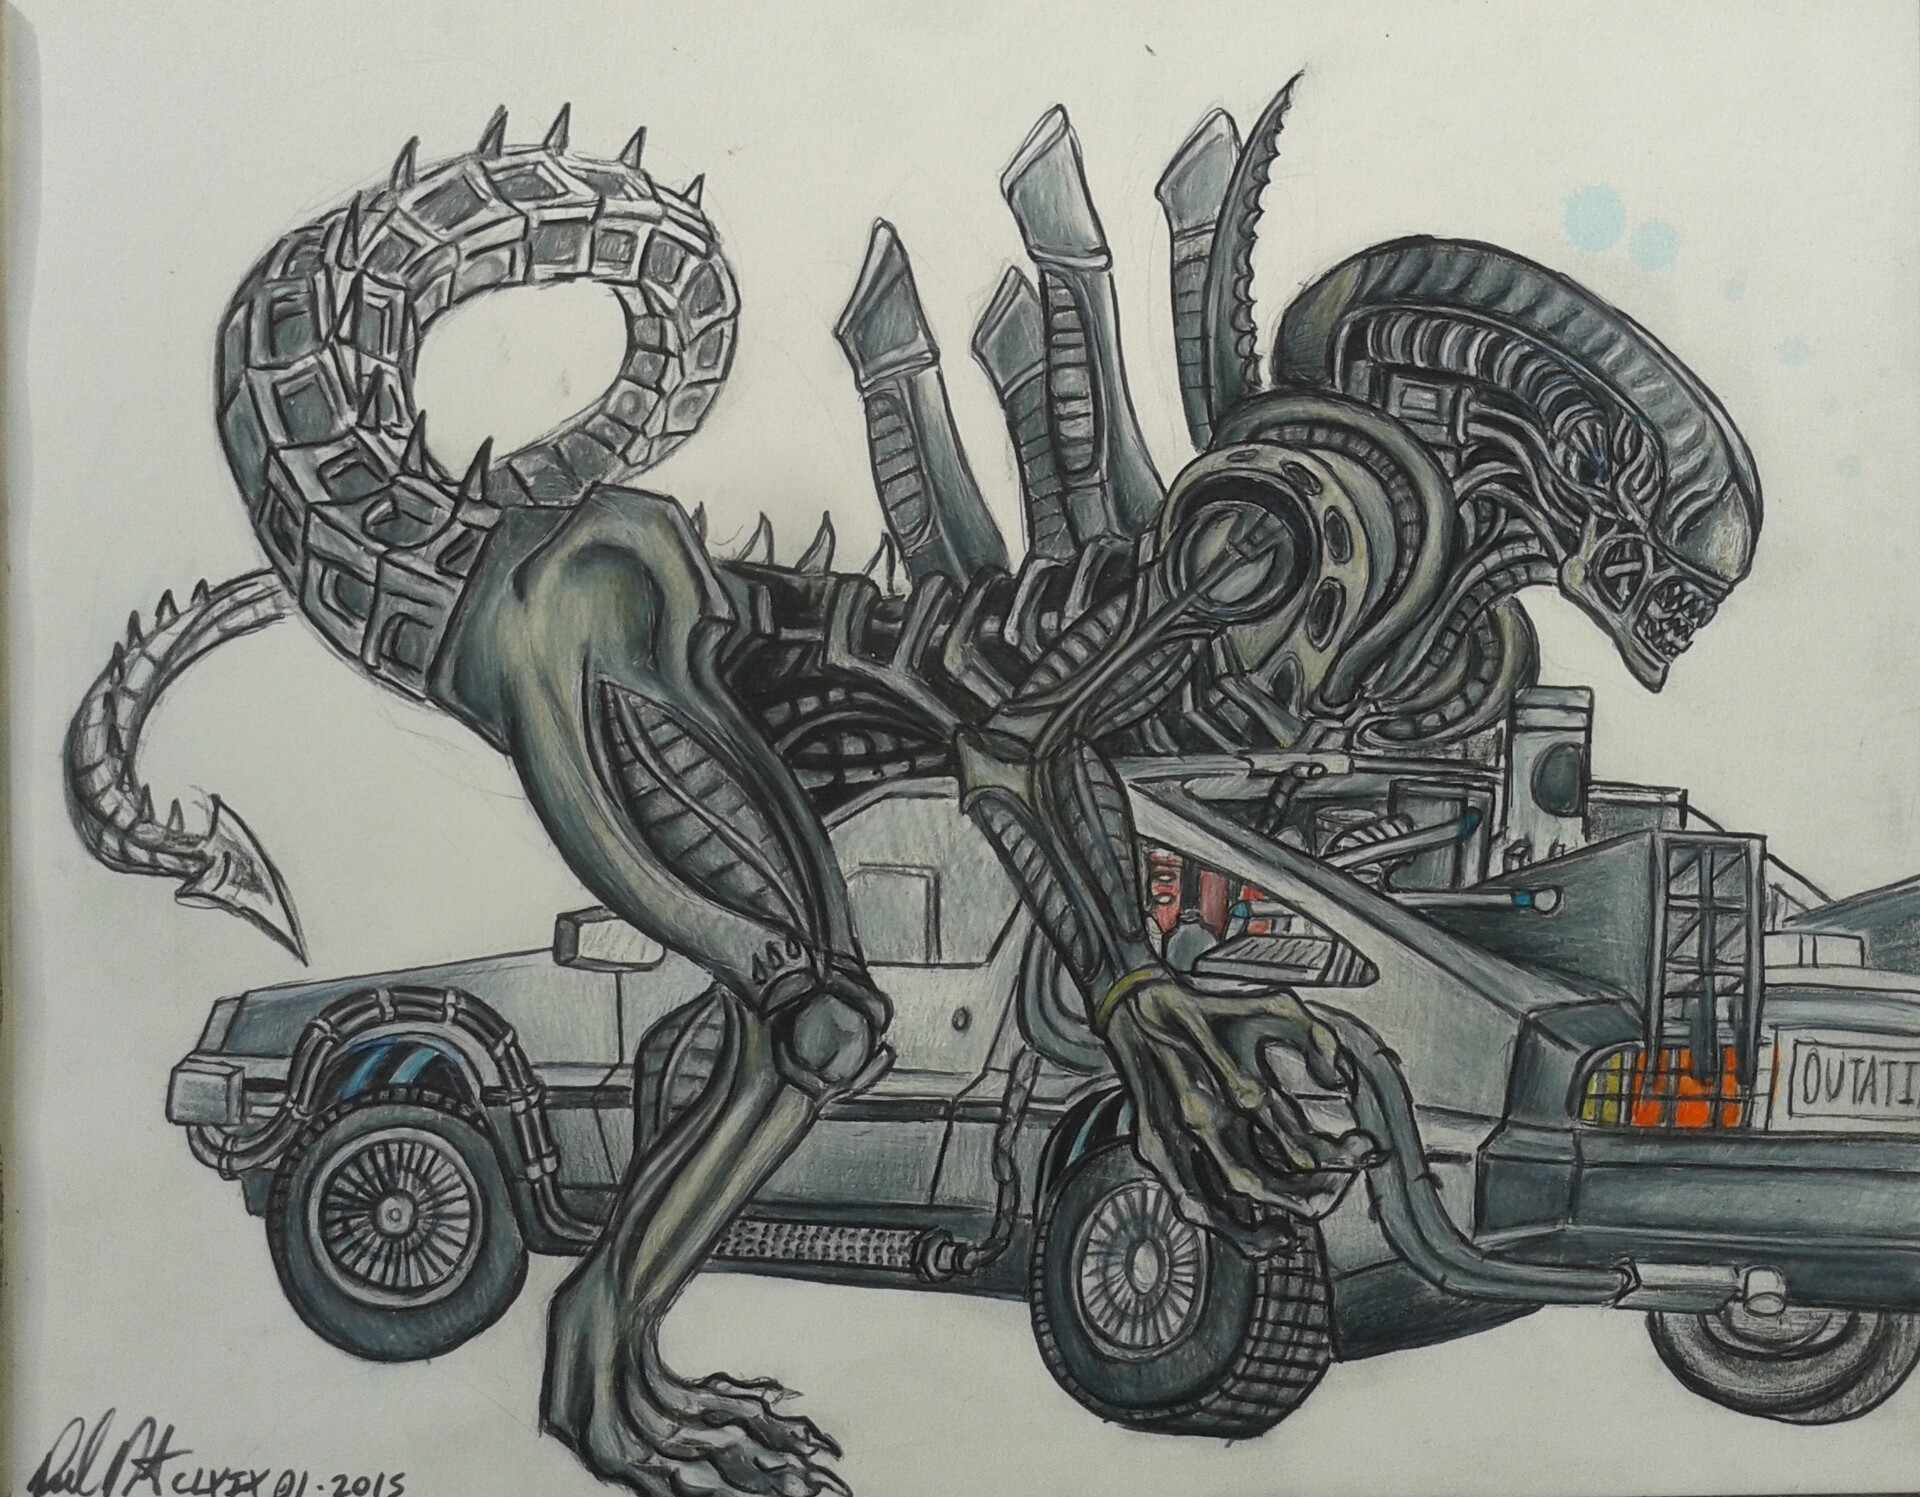 Daniel denta xenomorph delorean